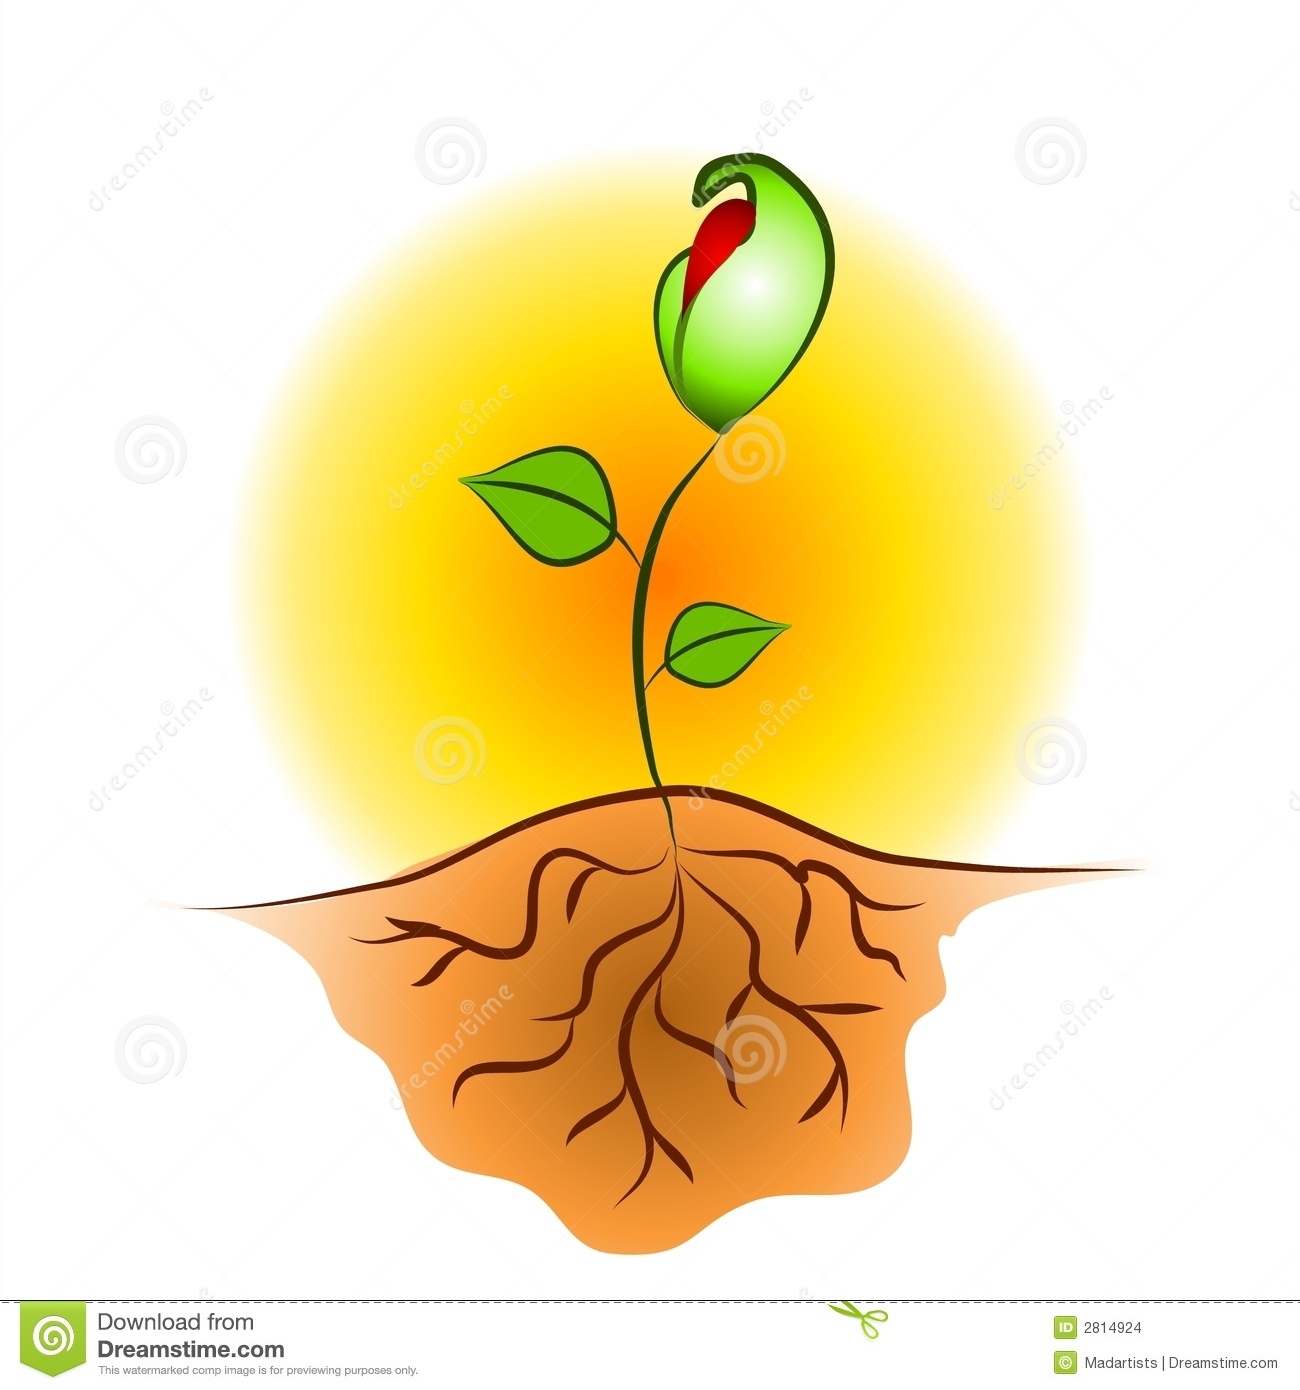 Download Seed Roots Clipart-Download Seed Roots Clipart-2